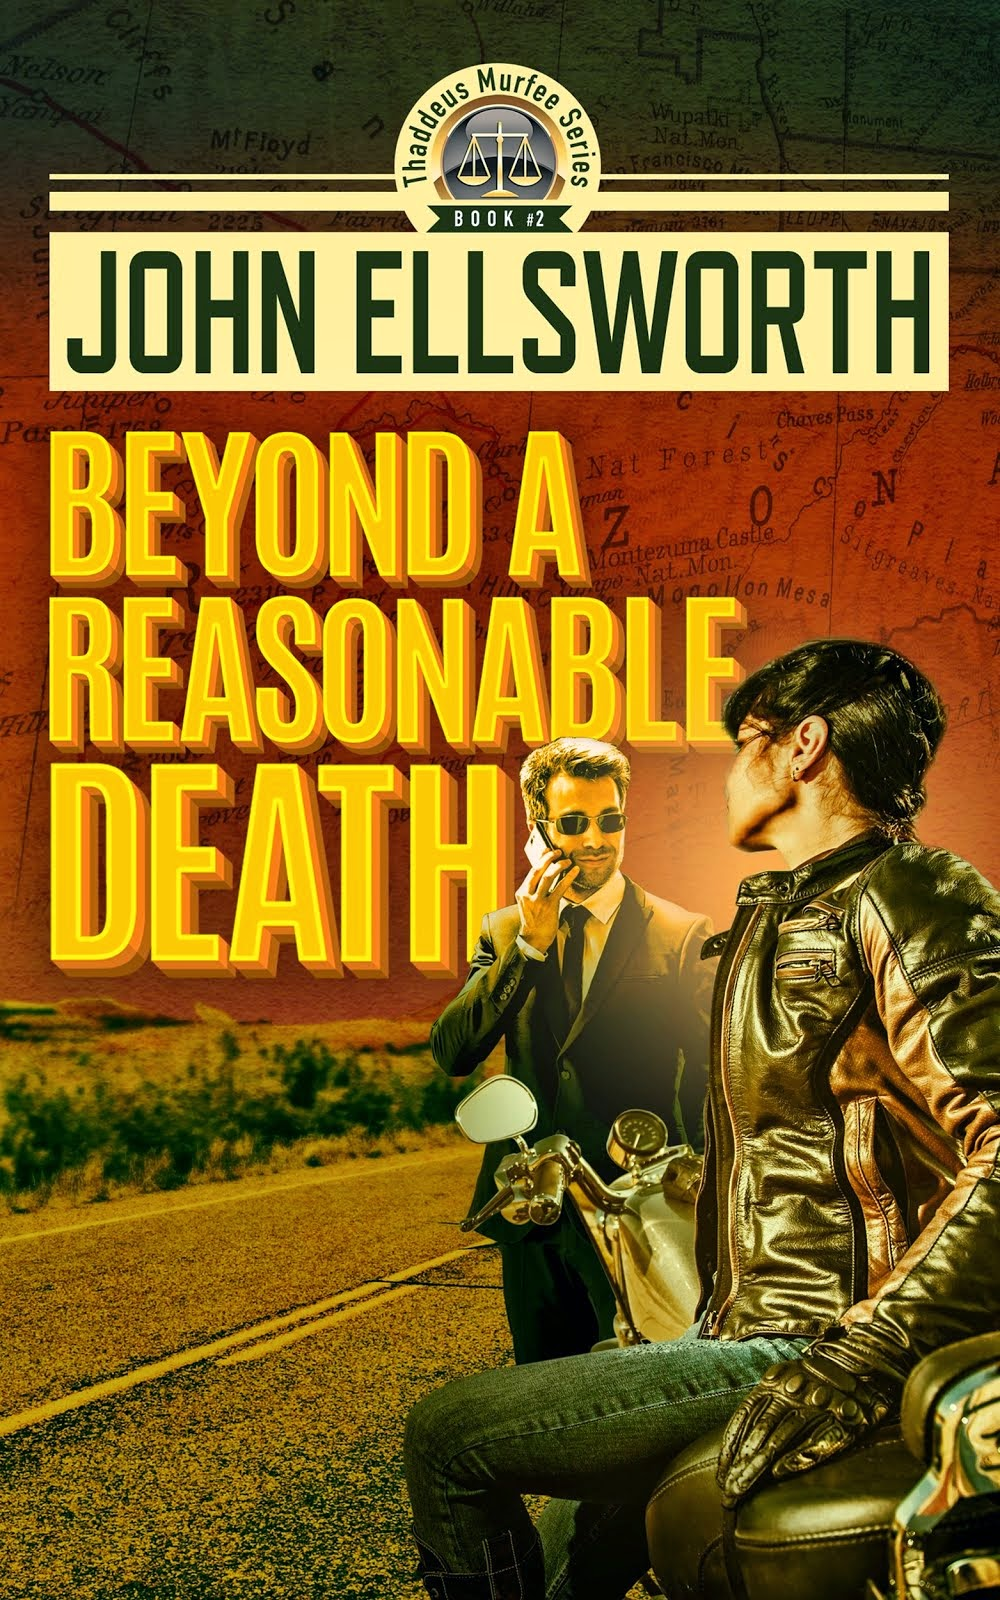 Beyond a Reasonable Death